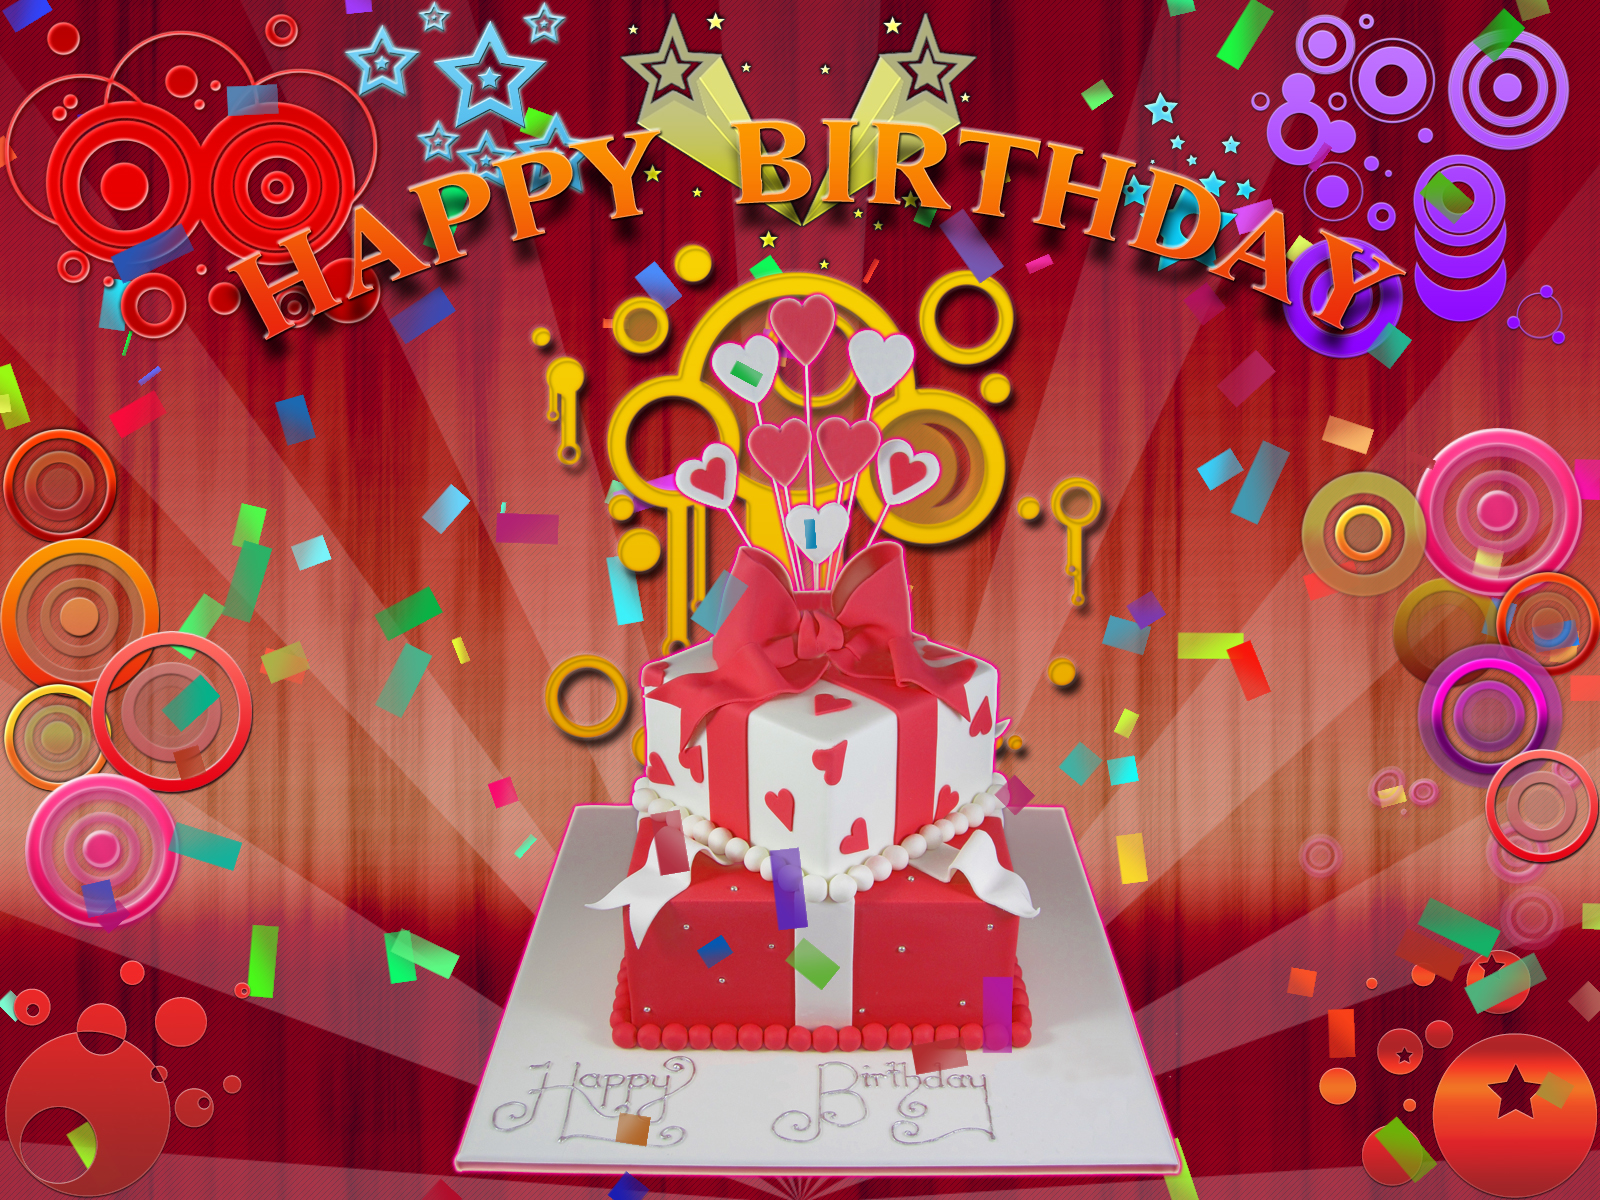 Birthday Wallpapers Best Here 1600x1200